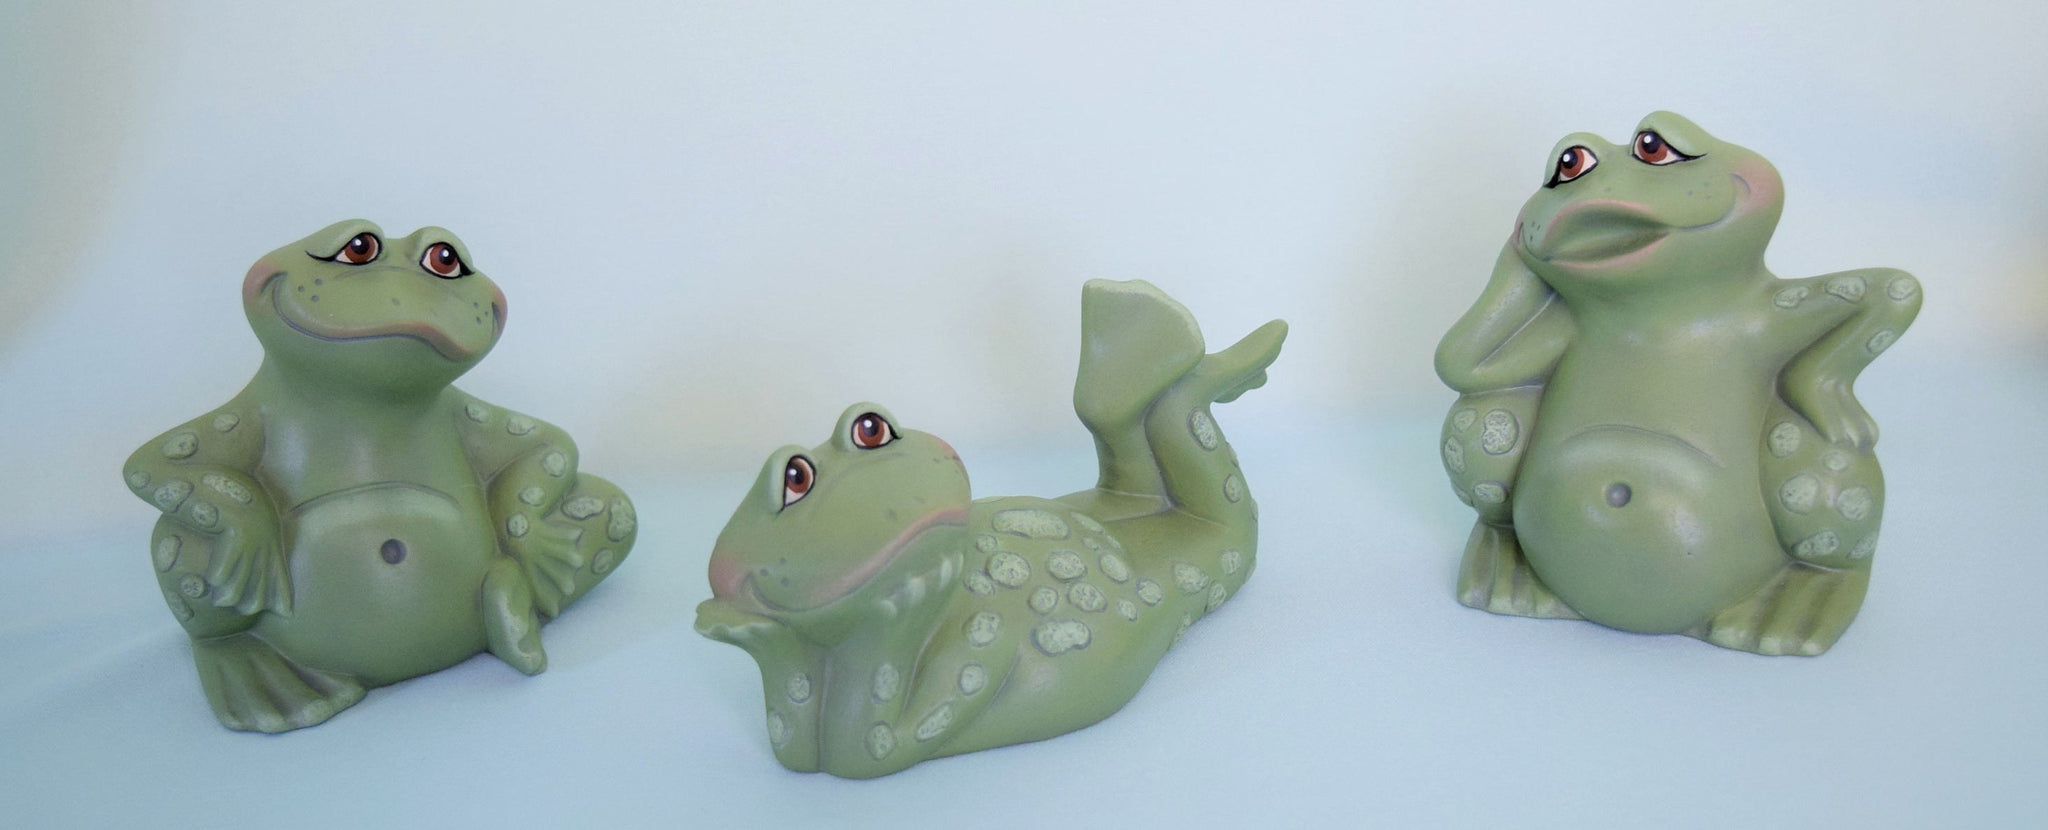 3 Ceramic Frogs